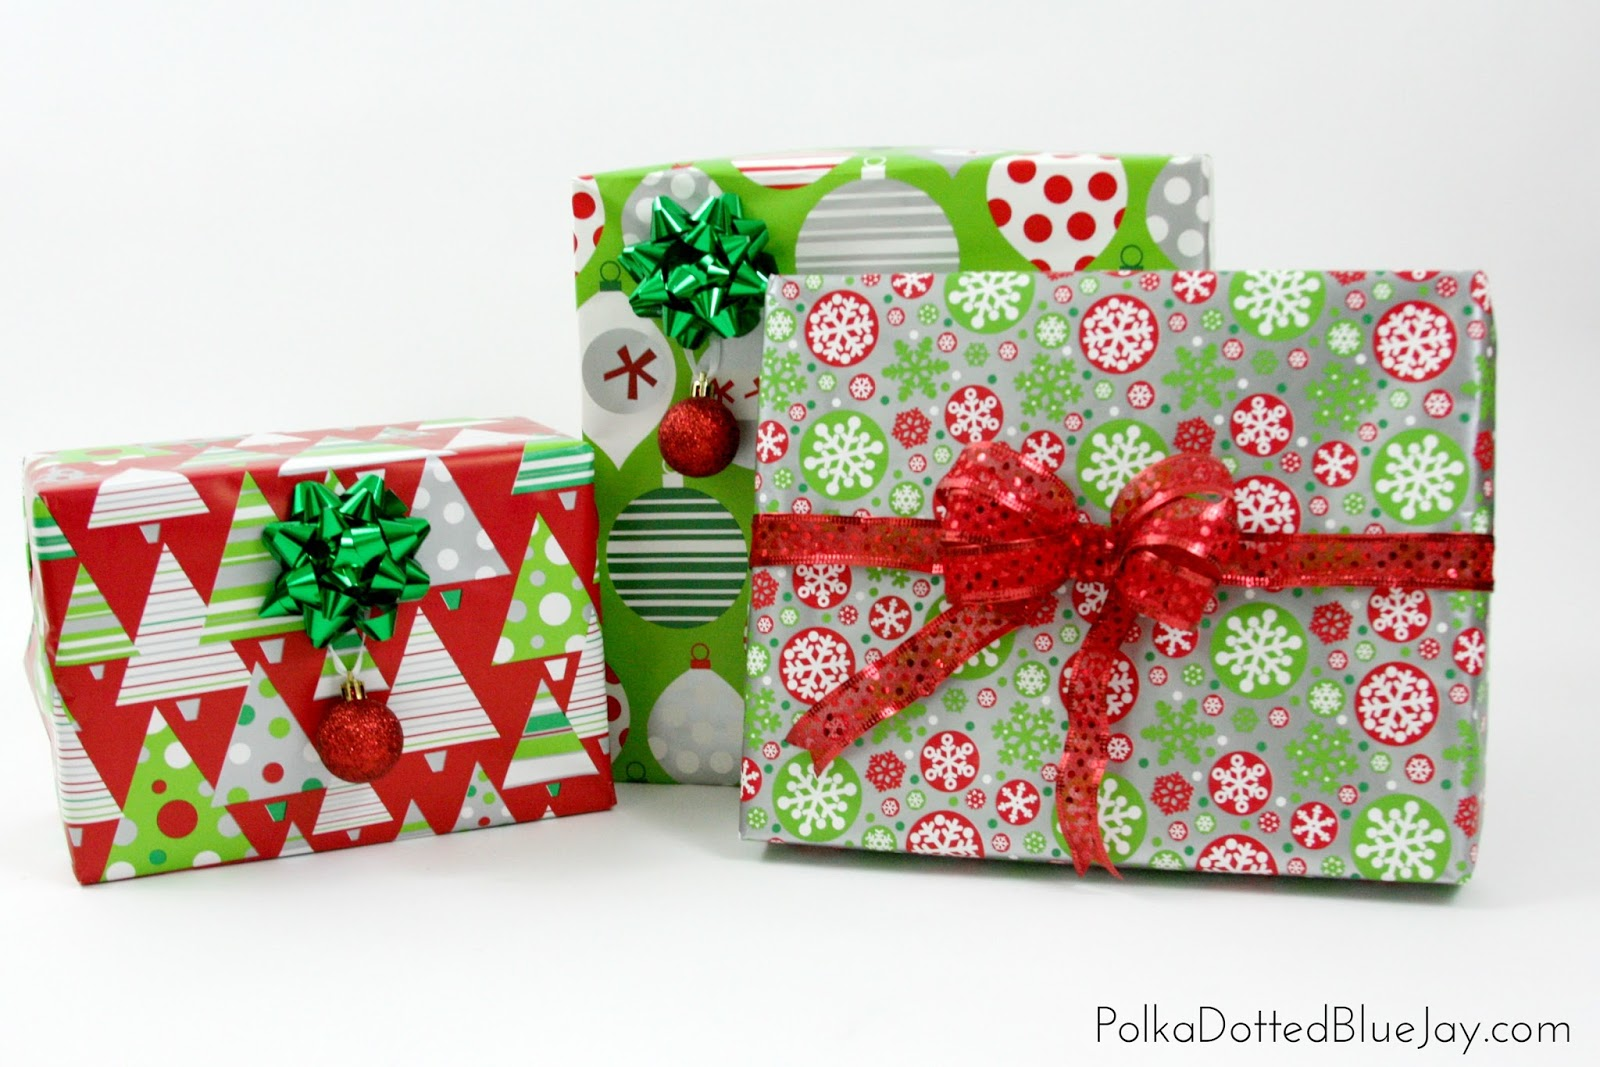 How To Wrap Beautiful Christmas Presents Polka Dotted Blue Jay